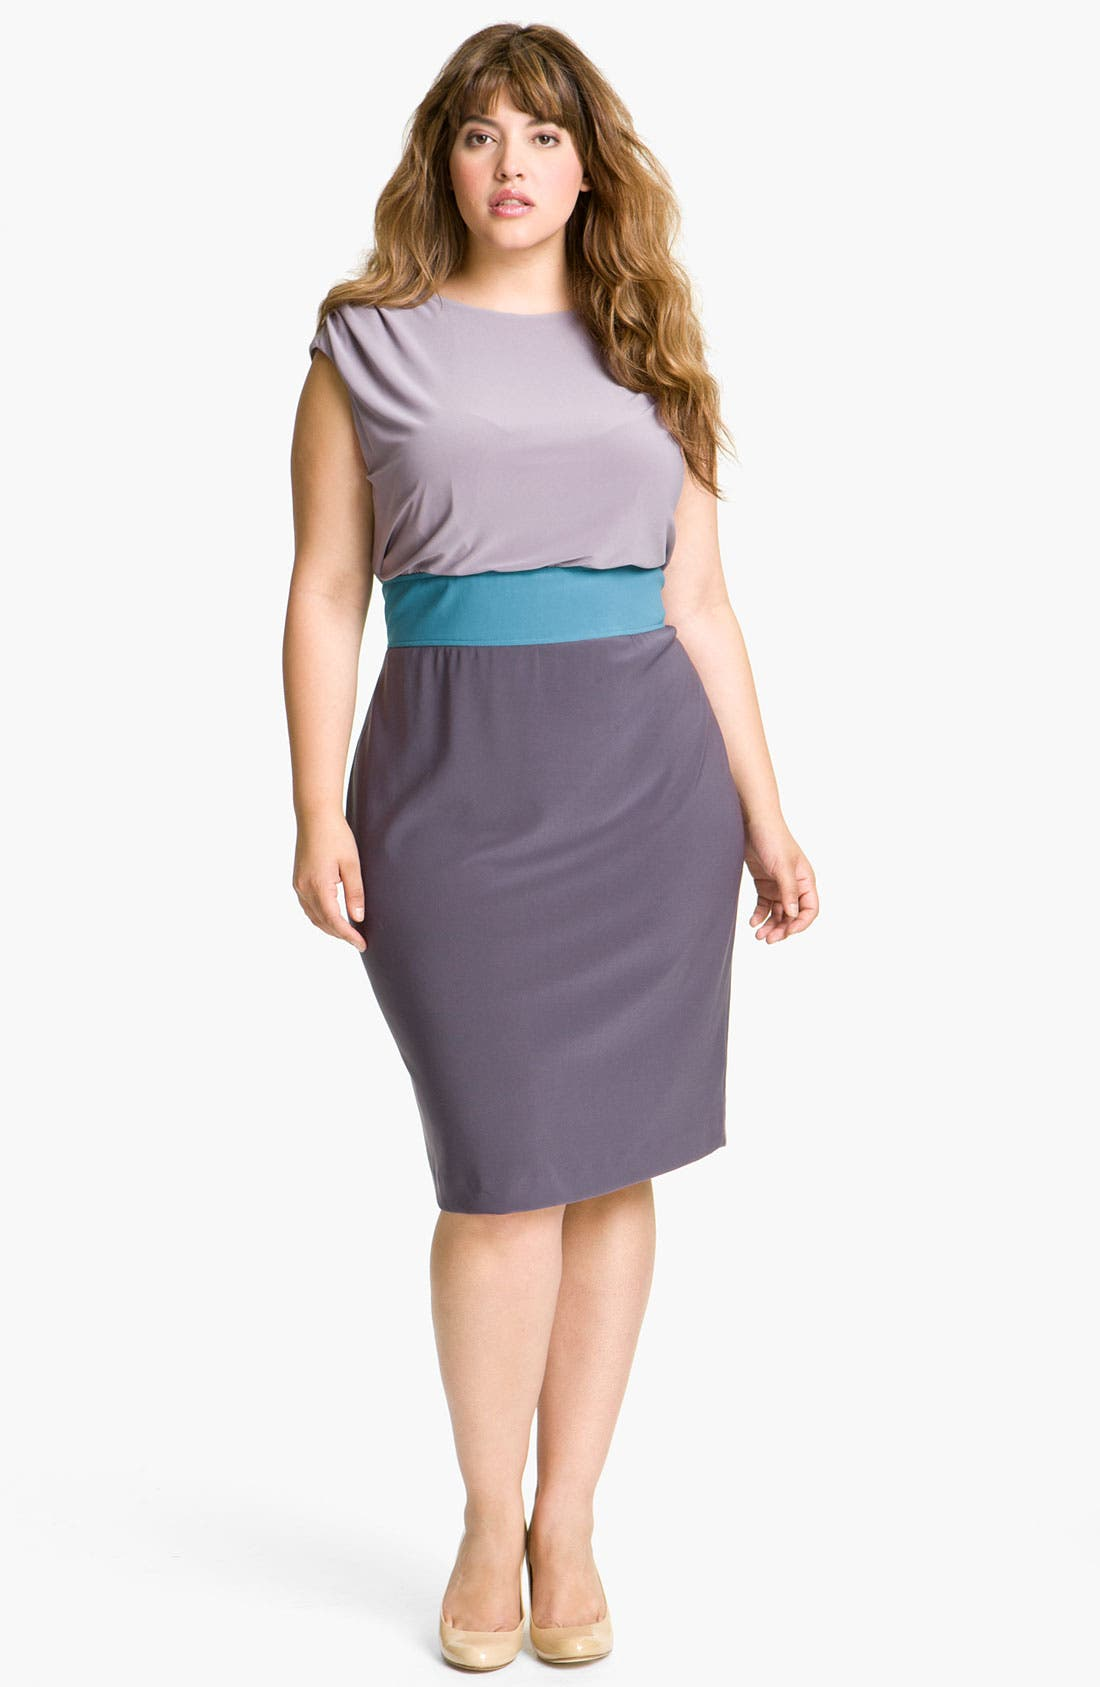 Alternate Image 1 Selected - Adrianna Papell Colorblock Blouson Sheath Dress (Plus)